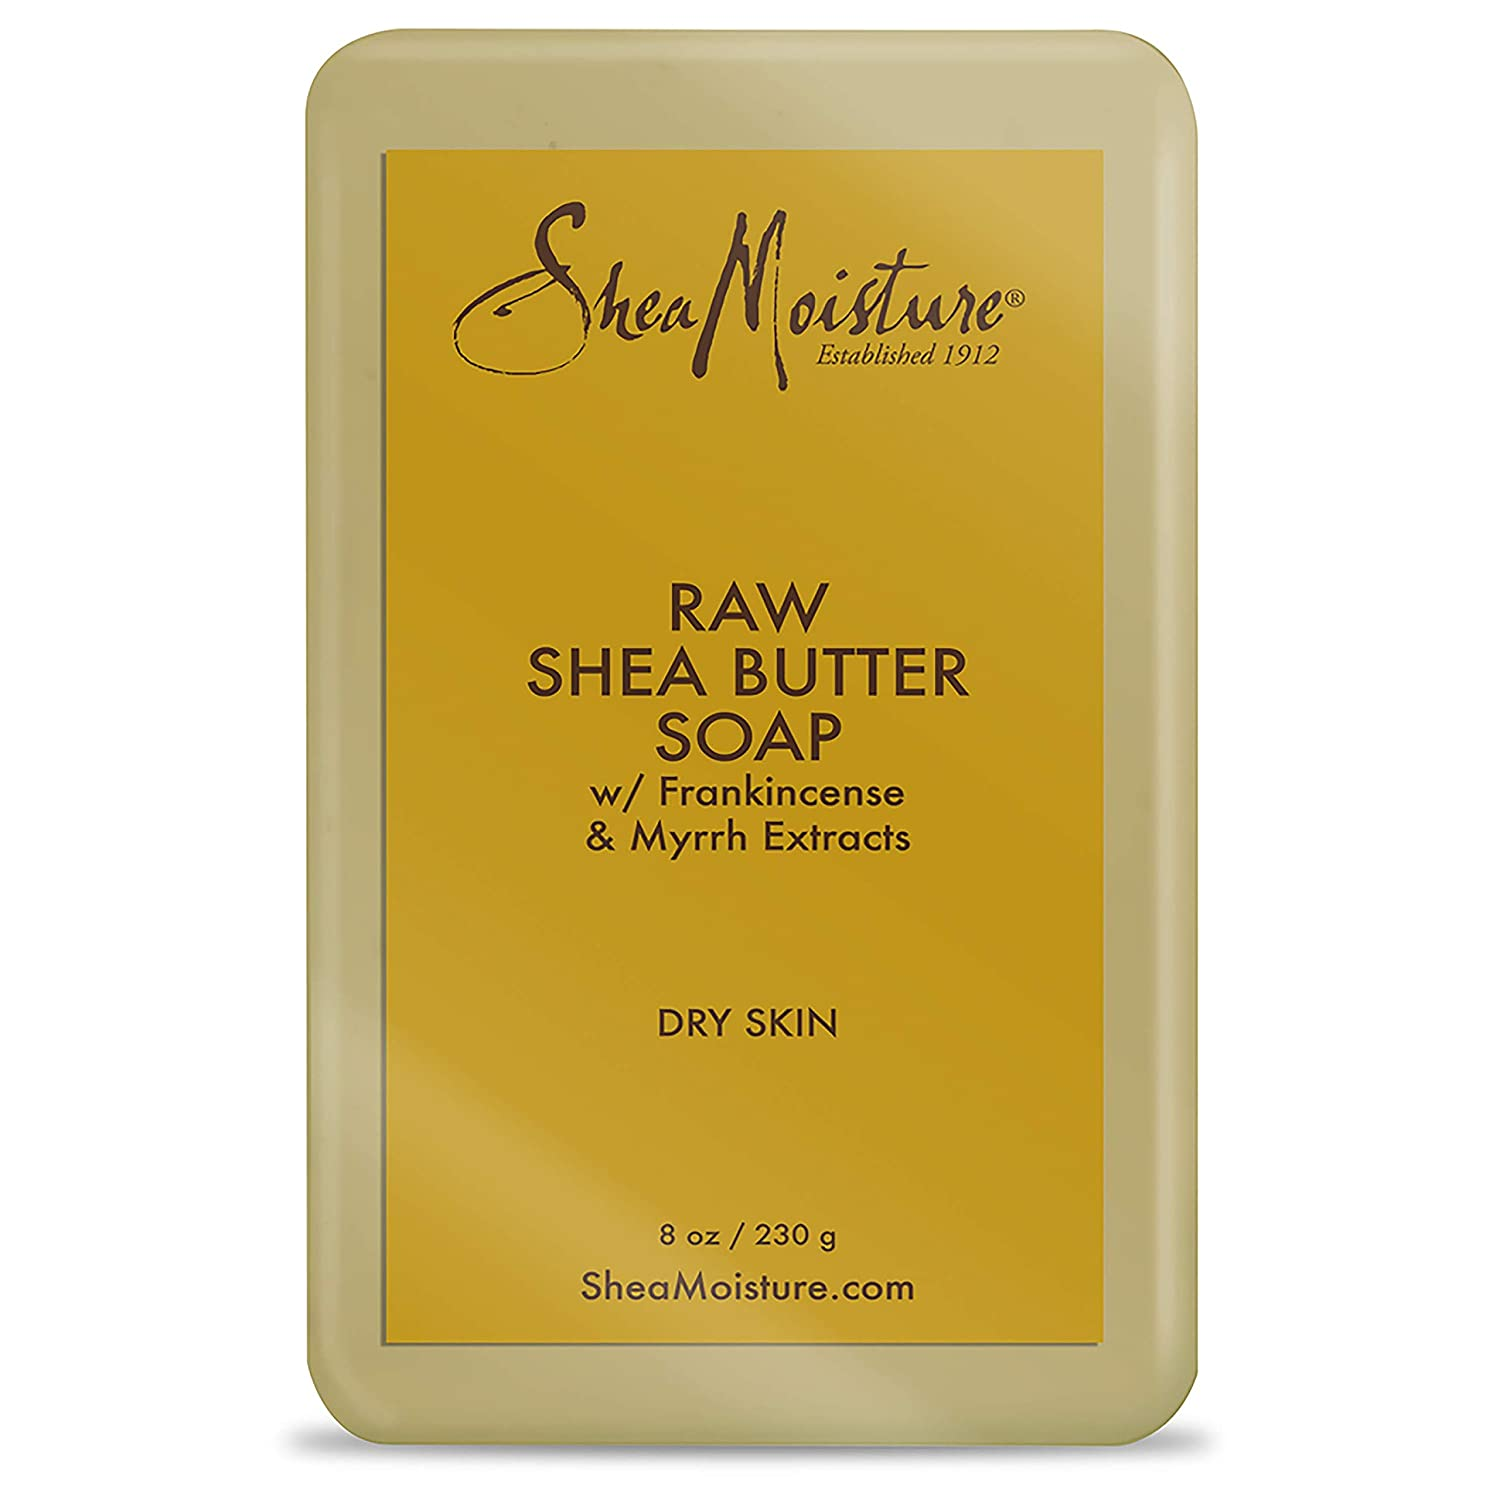 SheaMoisture Face and Body Bar Soap for Dry Skin